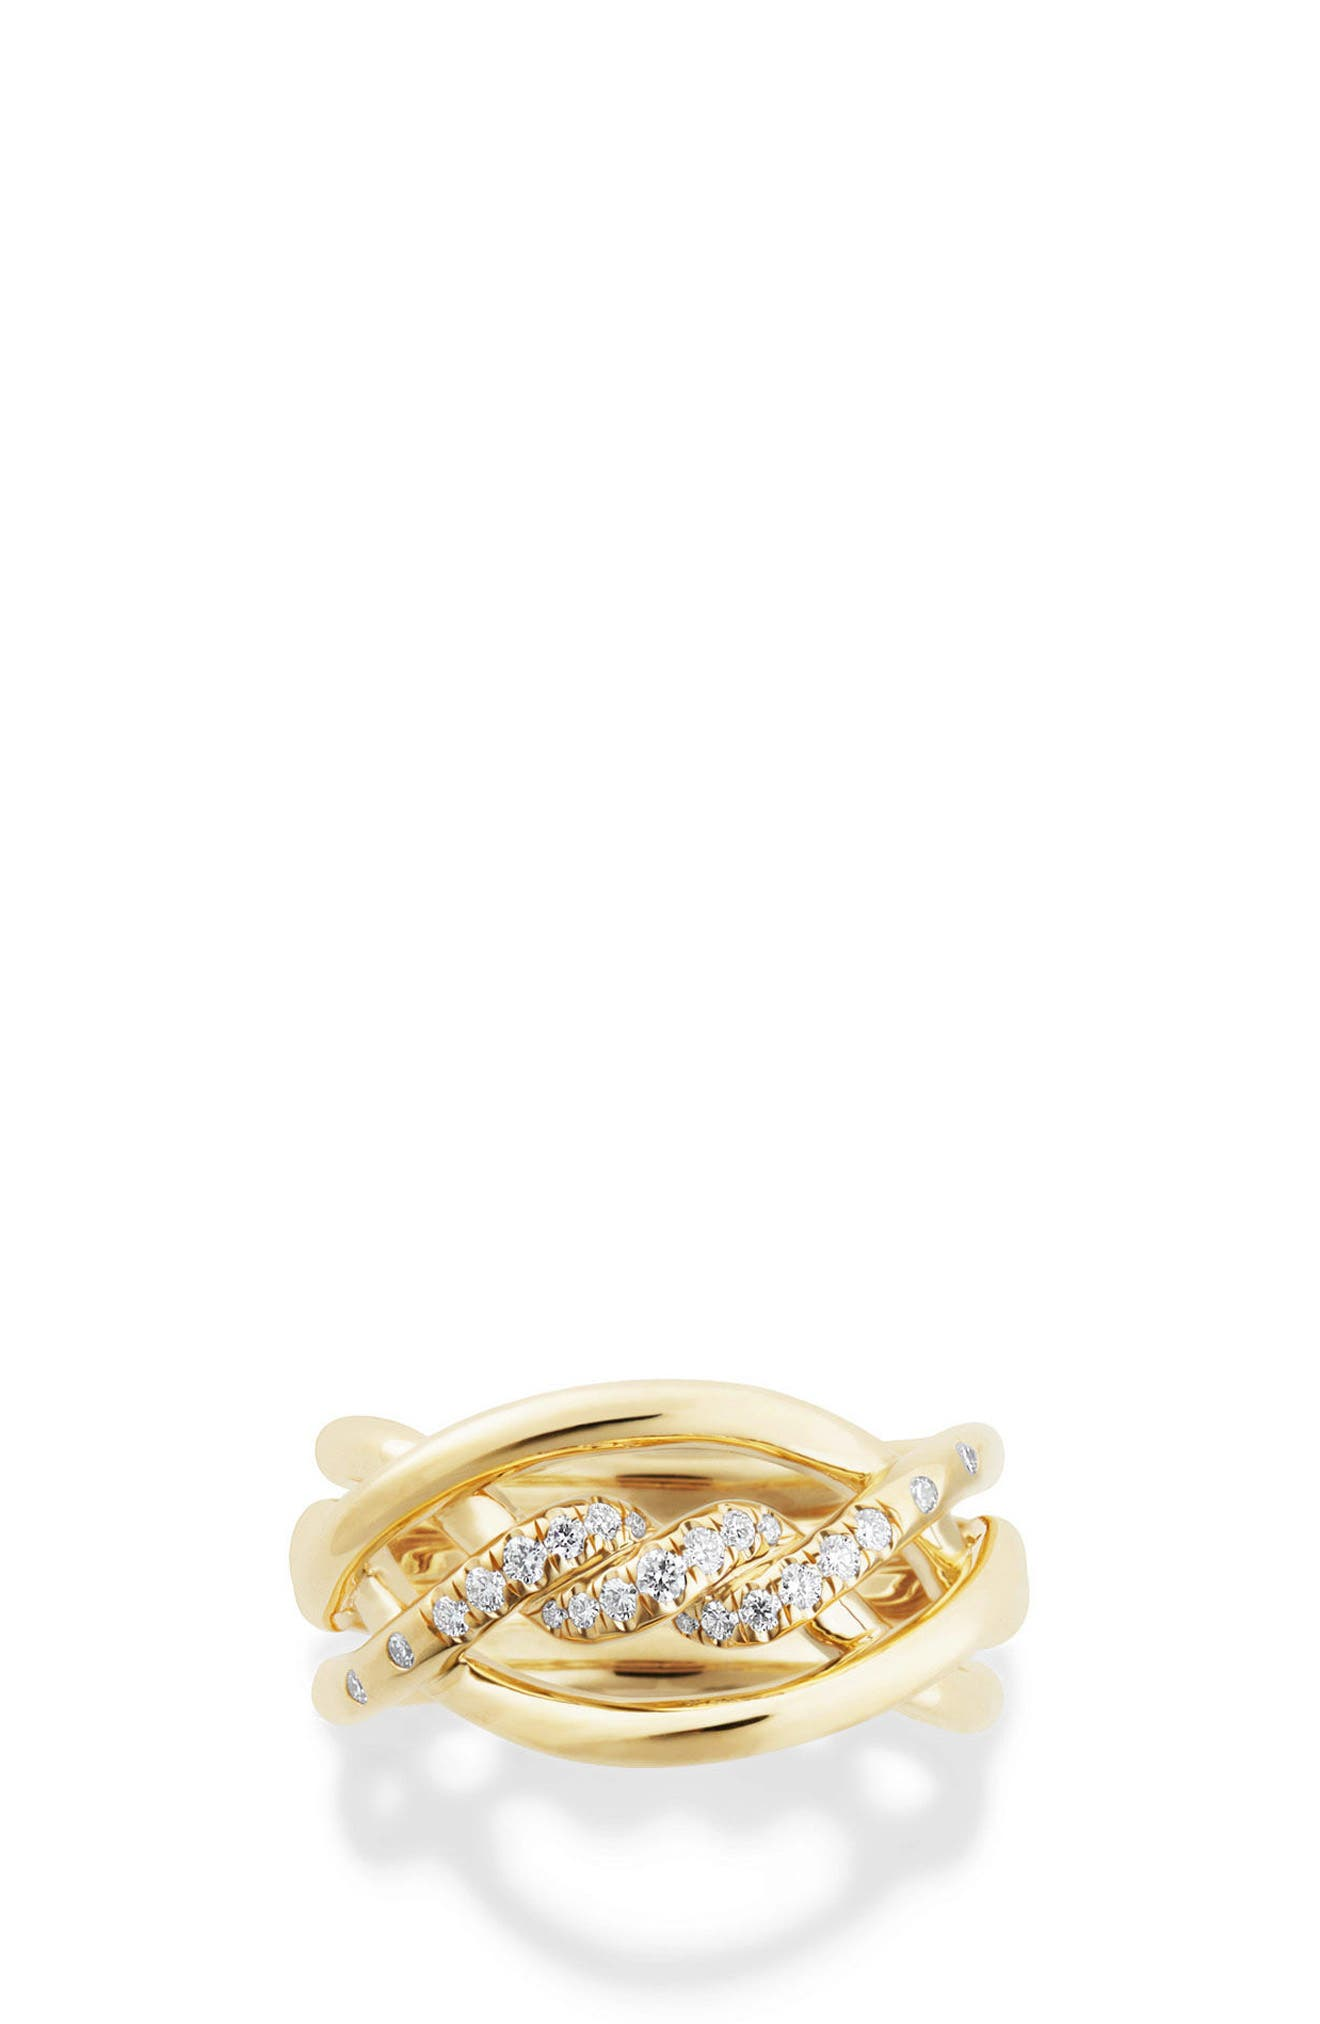 Continuance Ring with Diamonds in 18K Gold, 11.5mm,                             Alternate thumbnail 3, color,                             Yellow Gold